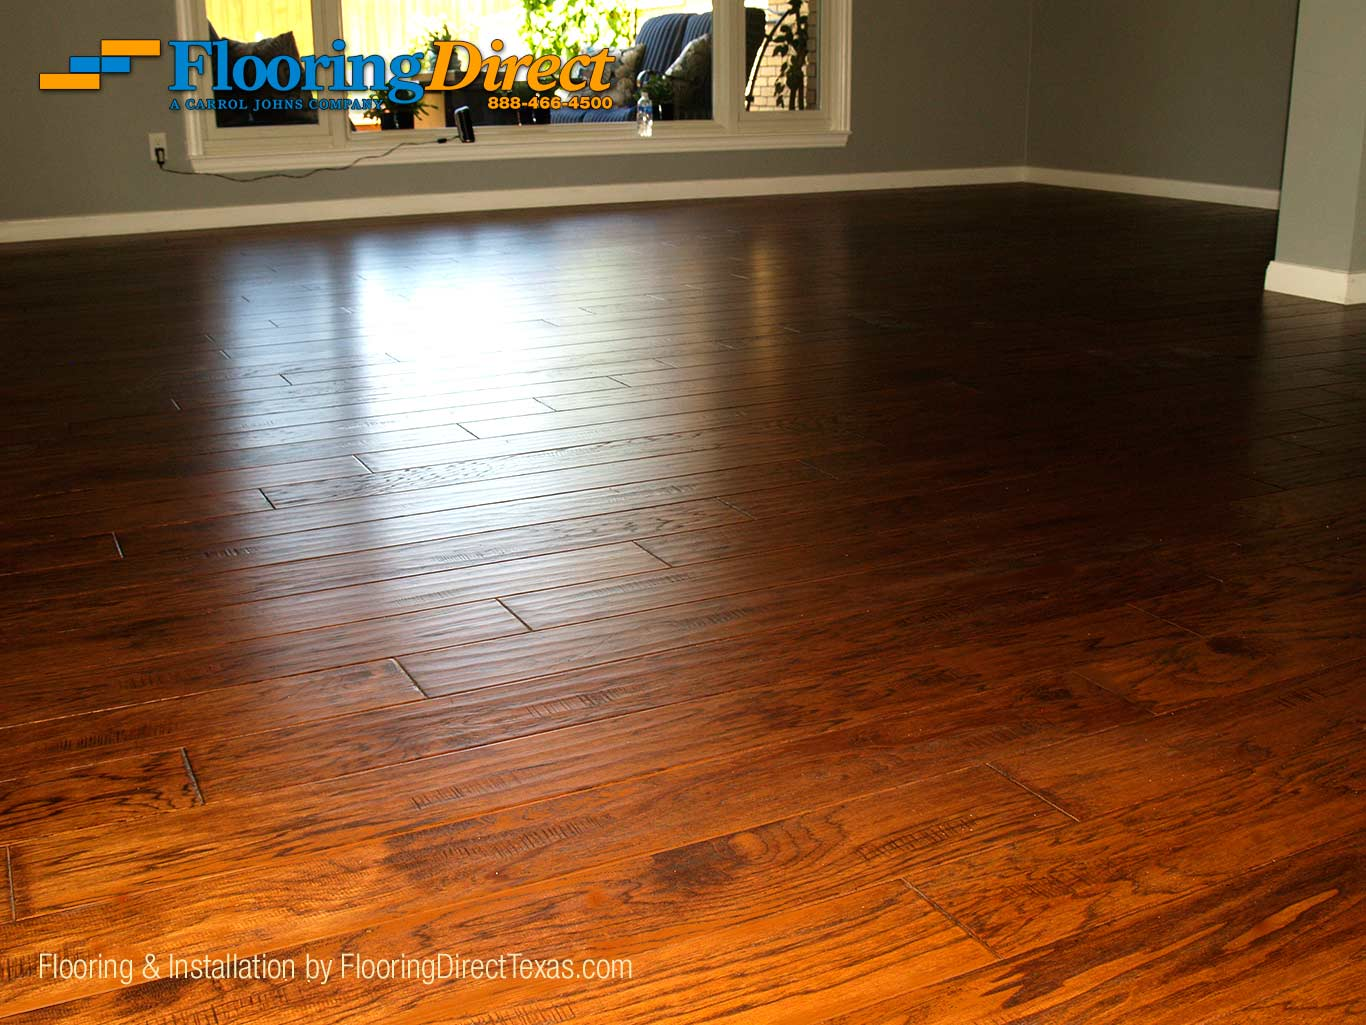 Hardwood Flooring Sales And Installation Flooring Direct